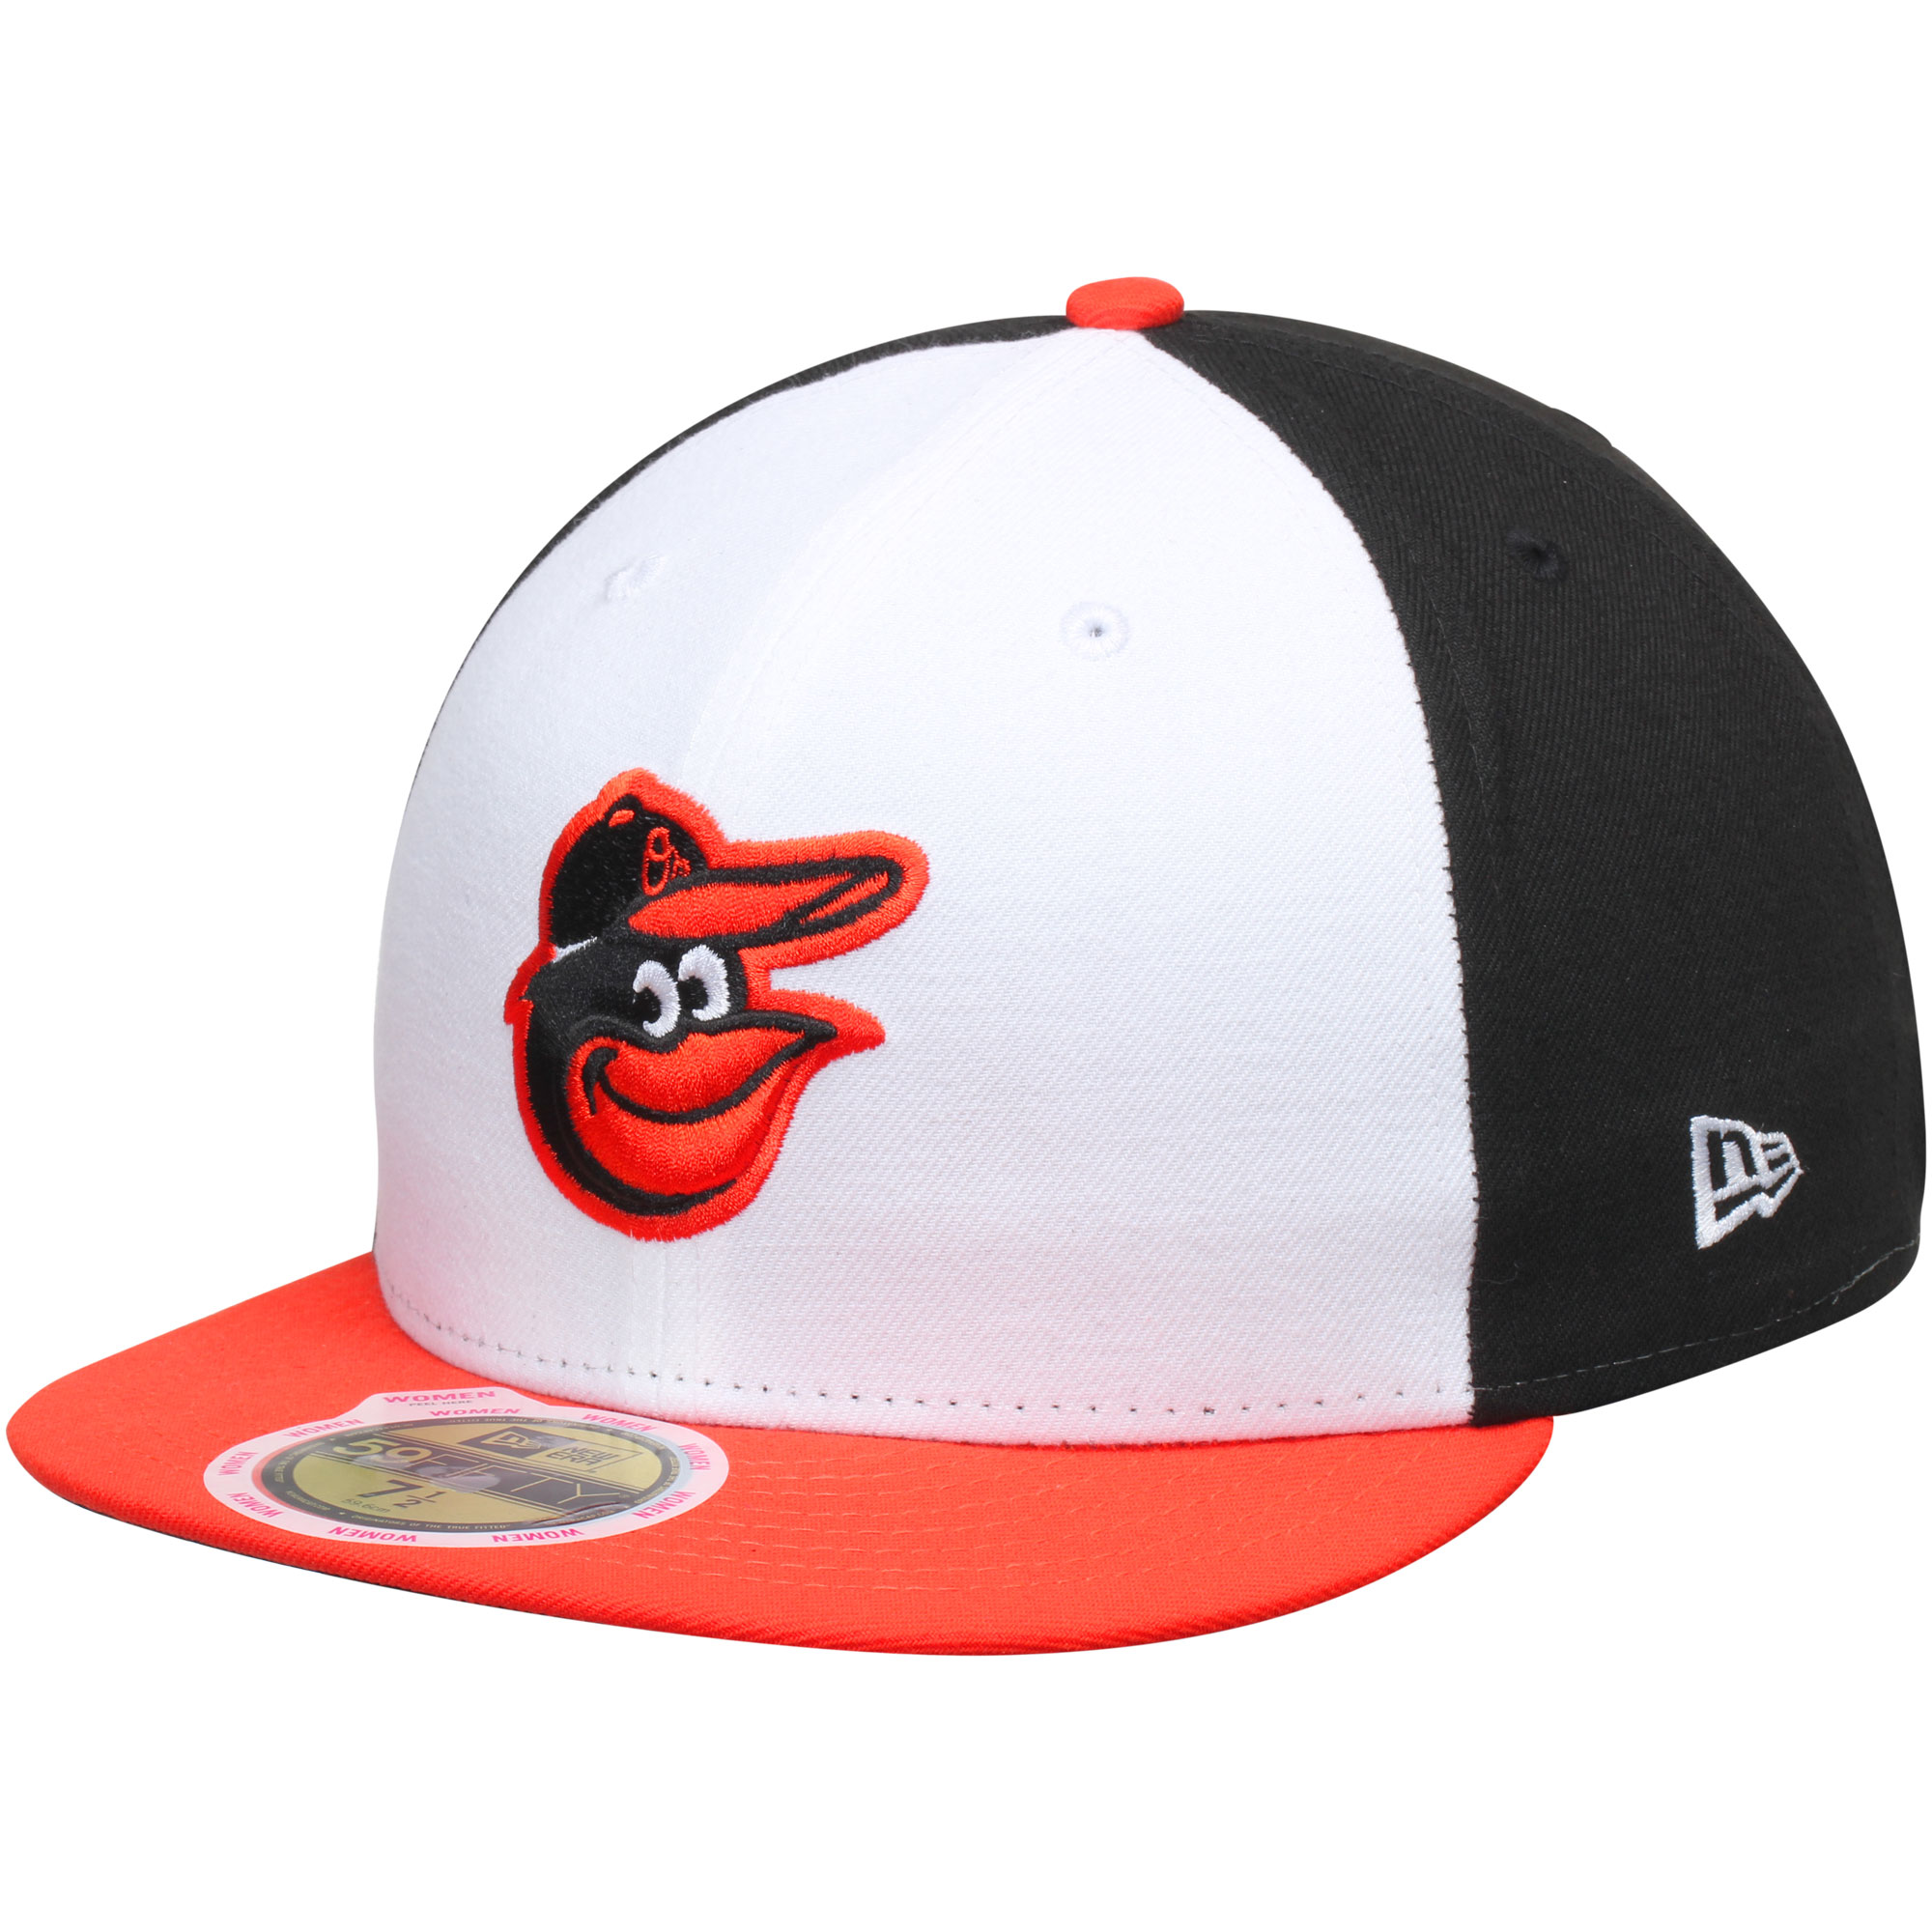 Baltimore Orioles New Era Women's Authentic Collection On-Field 59FIFTY Fitted Hat - Black/Orange